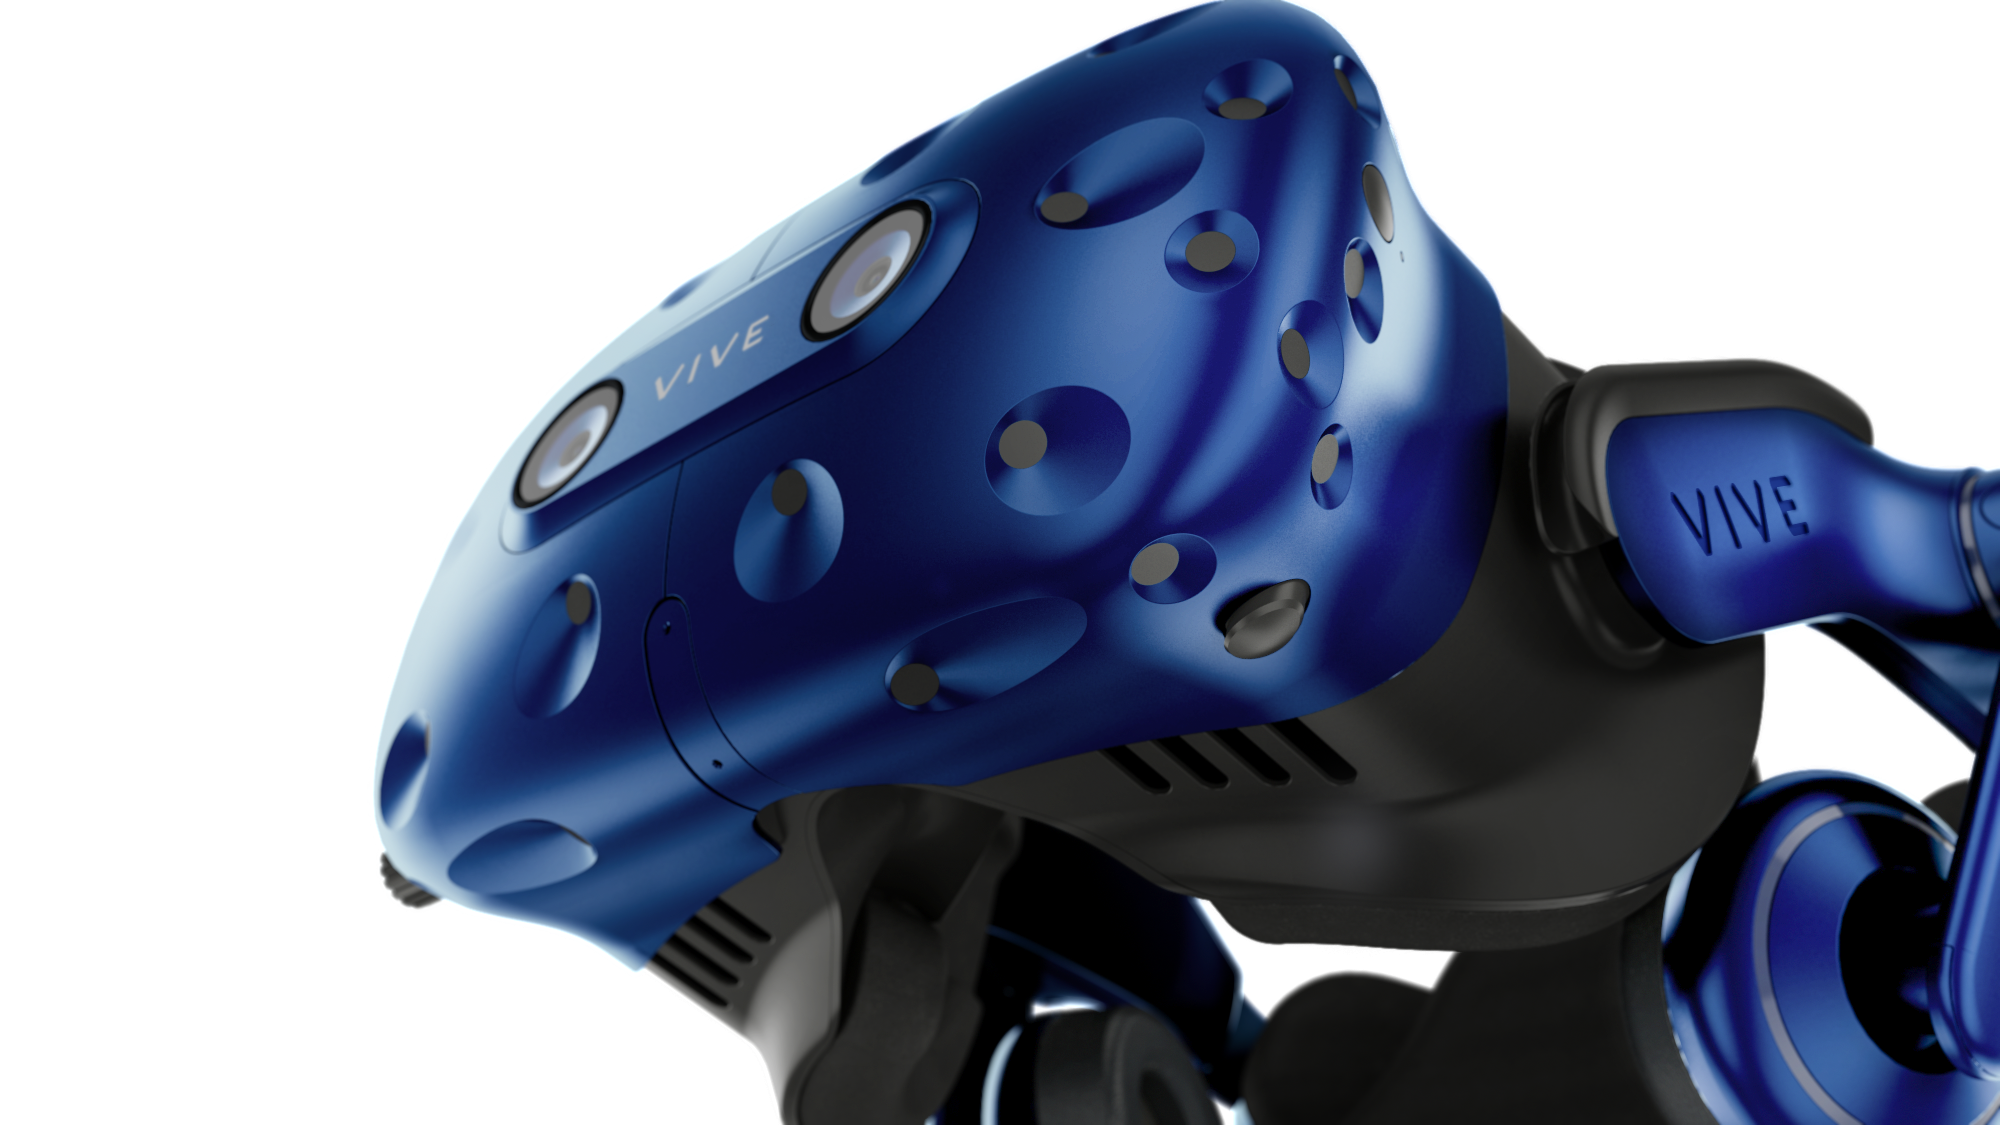 HTC VIVE Raises The Bar For Premium VR With New VIVE PRO Upgrade And Wireless VIVE Adaptor - VIVE Blog